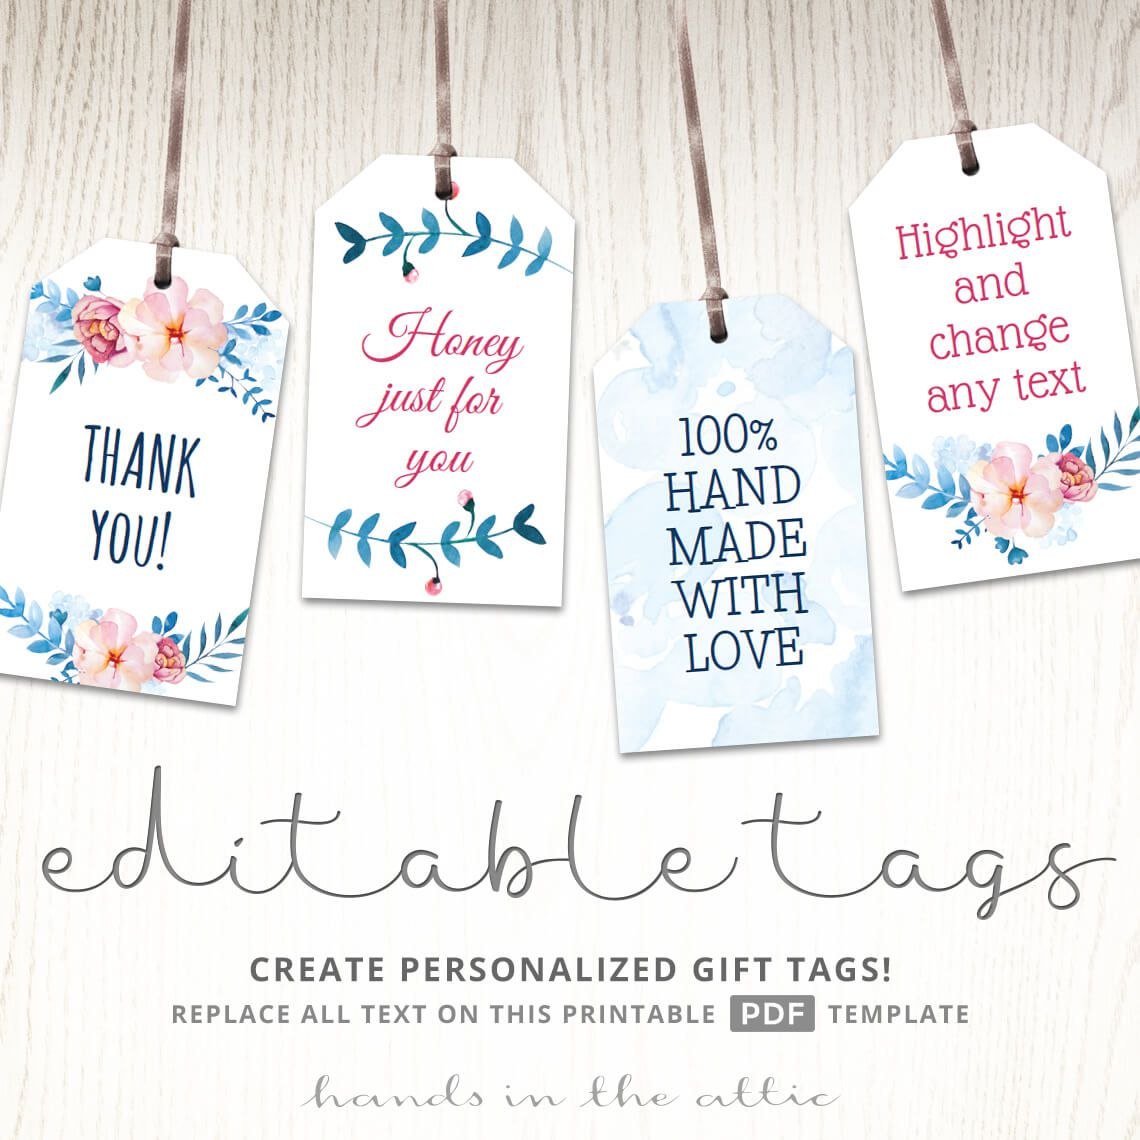 003 Fascinating Wedding Favor Tag Template Example  Templates Editable Free Party PrintableFull